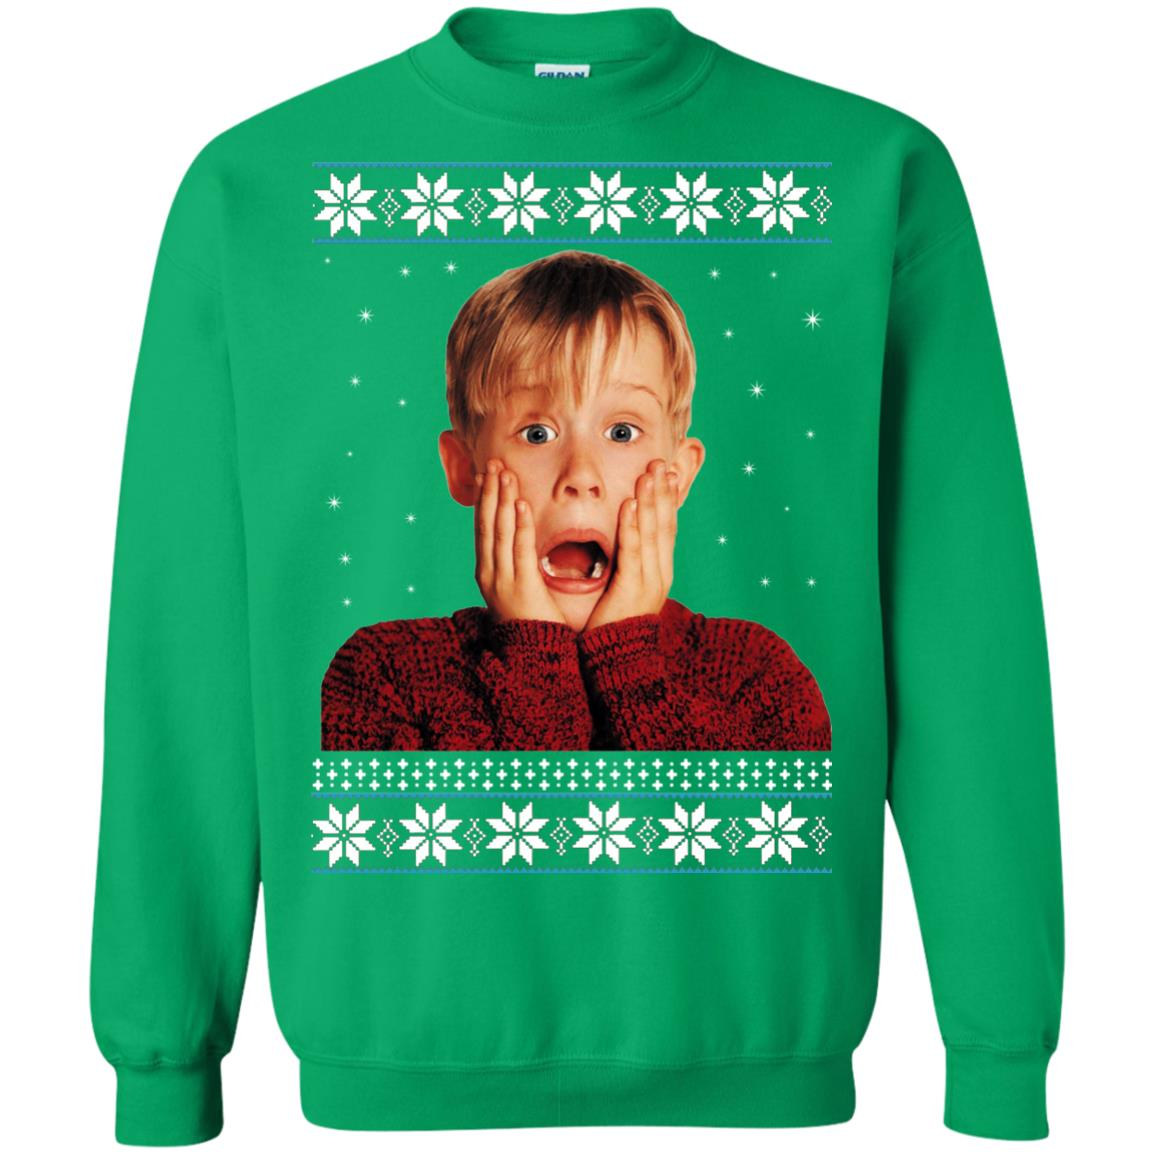 image 6281 - Home Alone: Kevin McCallister Sweatshirt, Hoodie, Long Sleeve